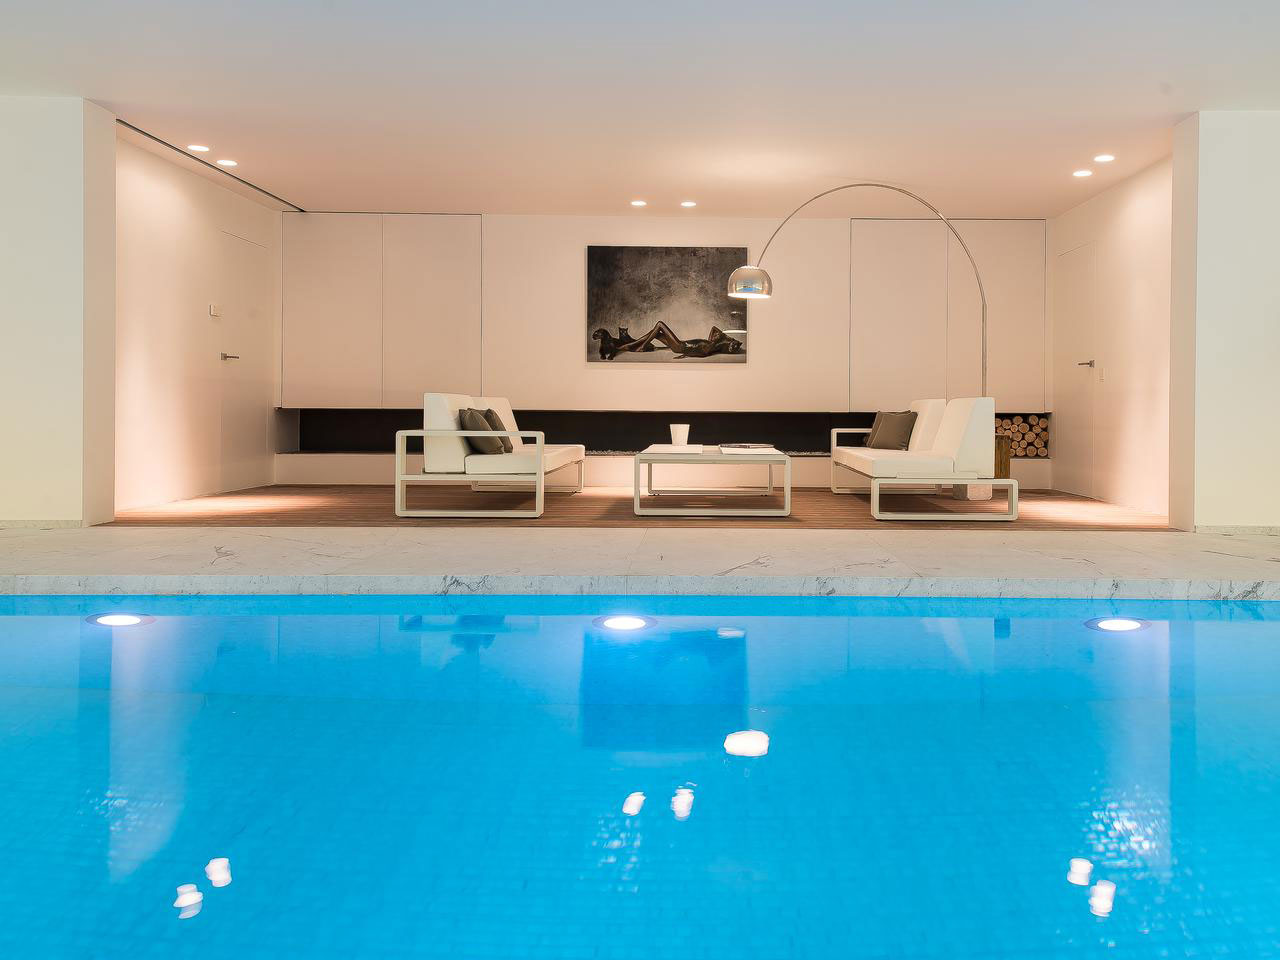 Pool, Art, Lighting, Seating, House Renovation in Sint-Genesius-Rode, Belgium